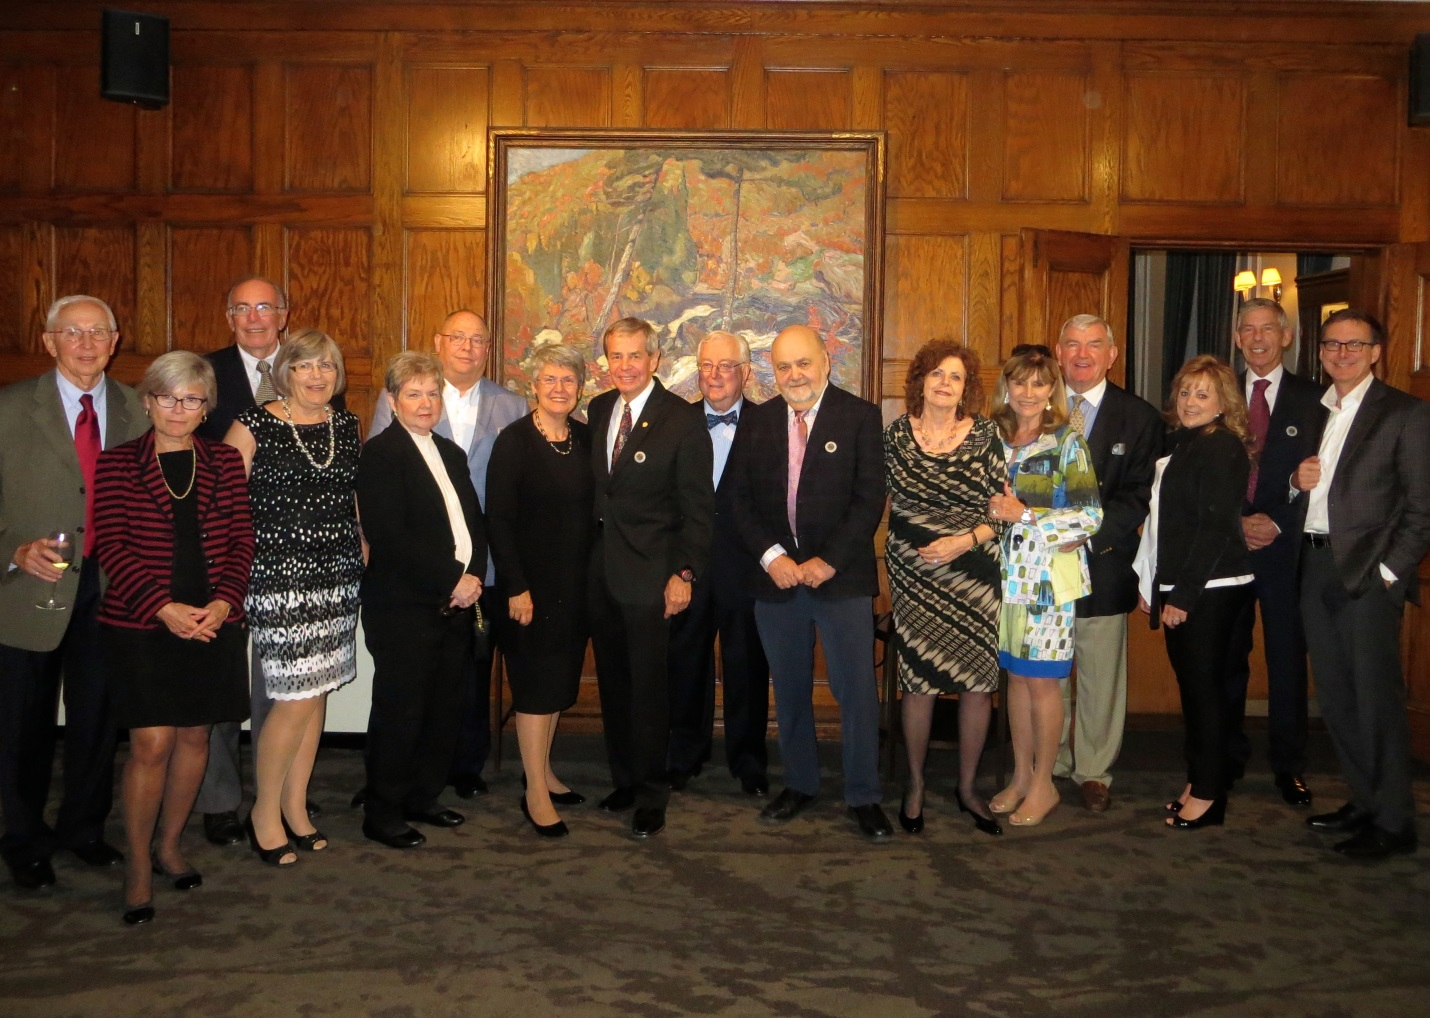 The Rotman Class of 1967 gives back with a student scholarship